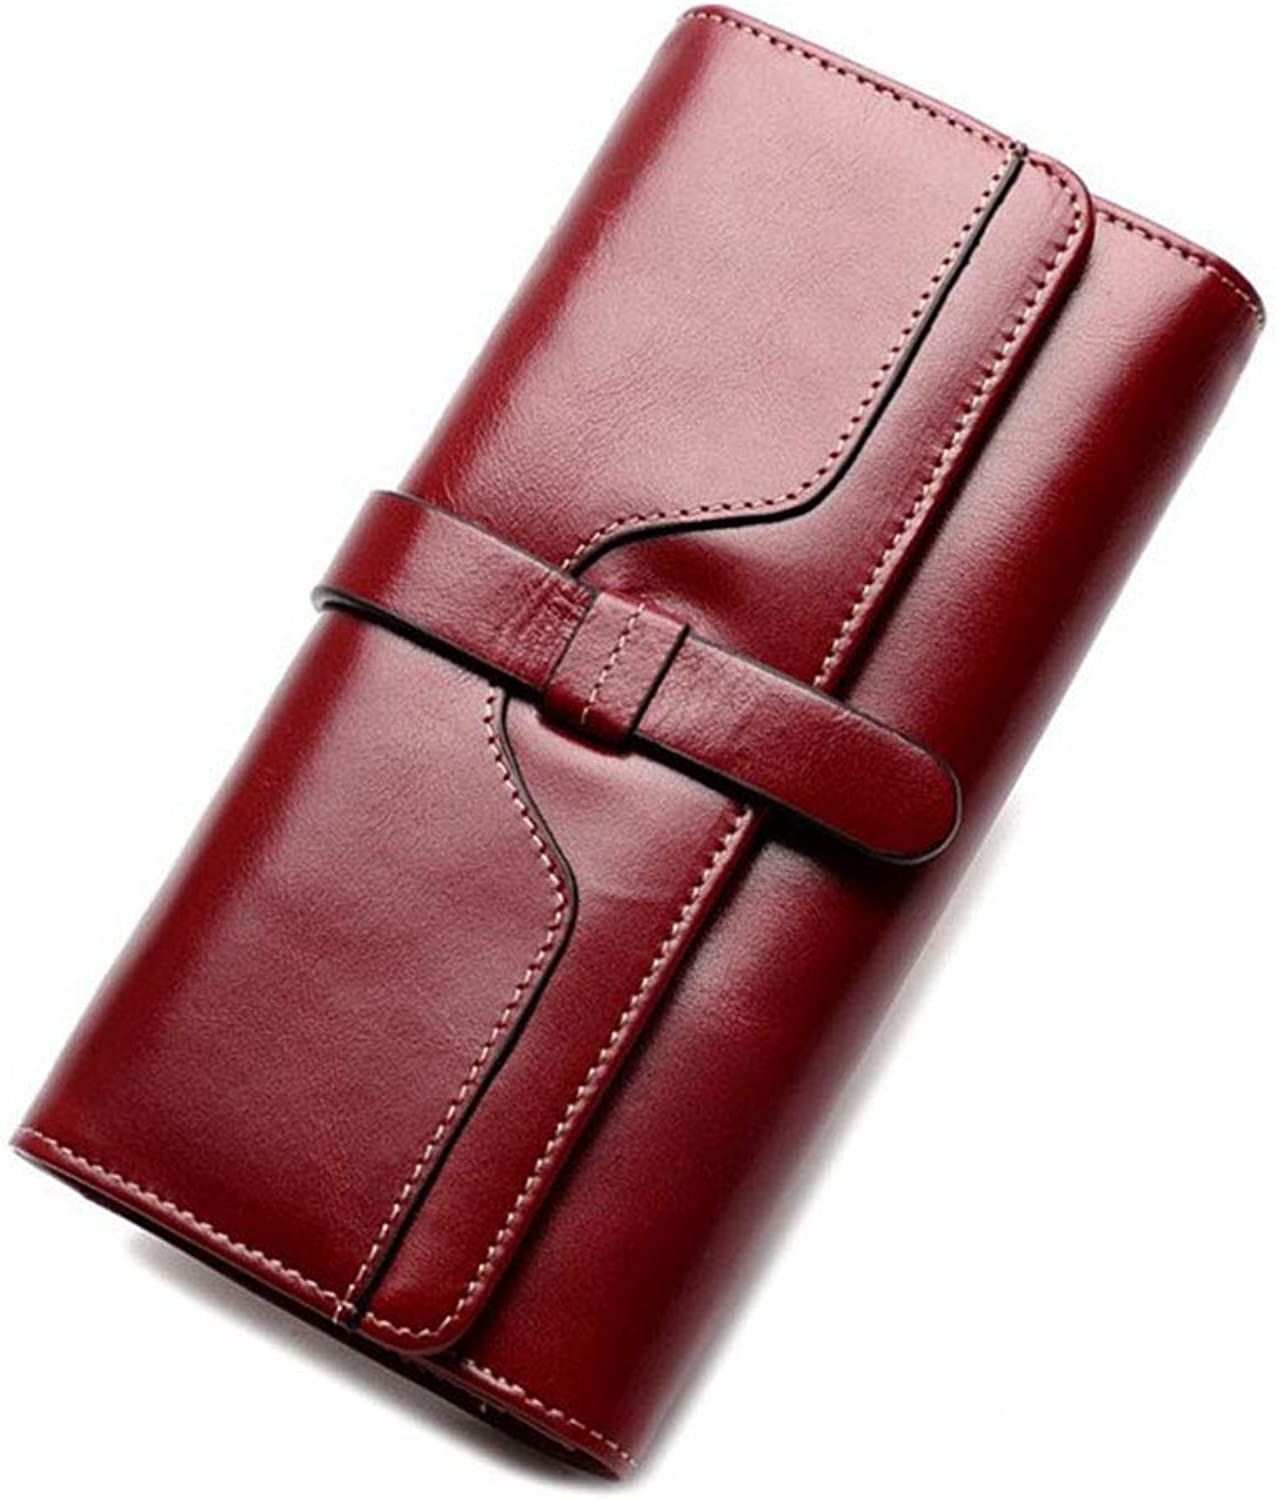 Ladies Leather Wallet Long Zipper Clutch Bag Ladies Large Capacity Wallet Clutch (color   Red)